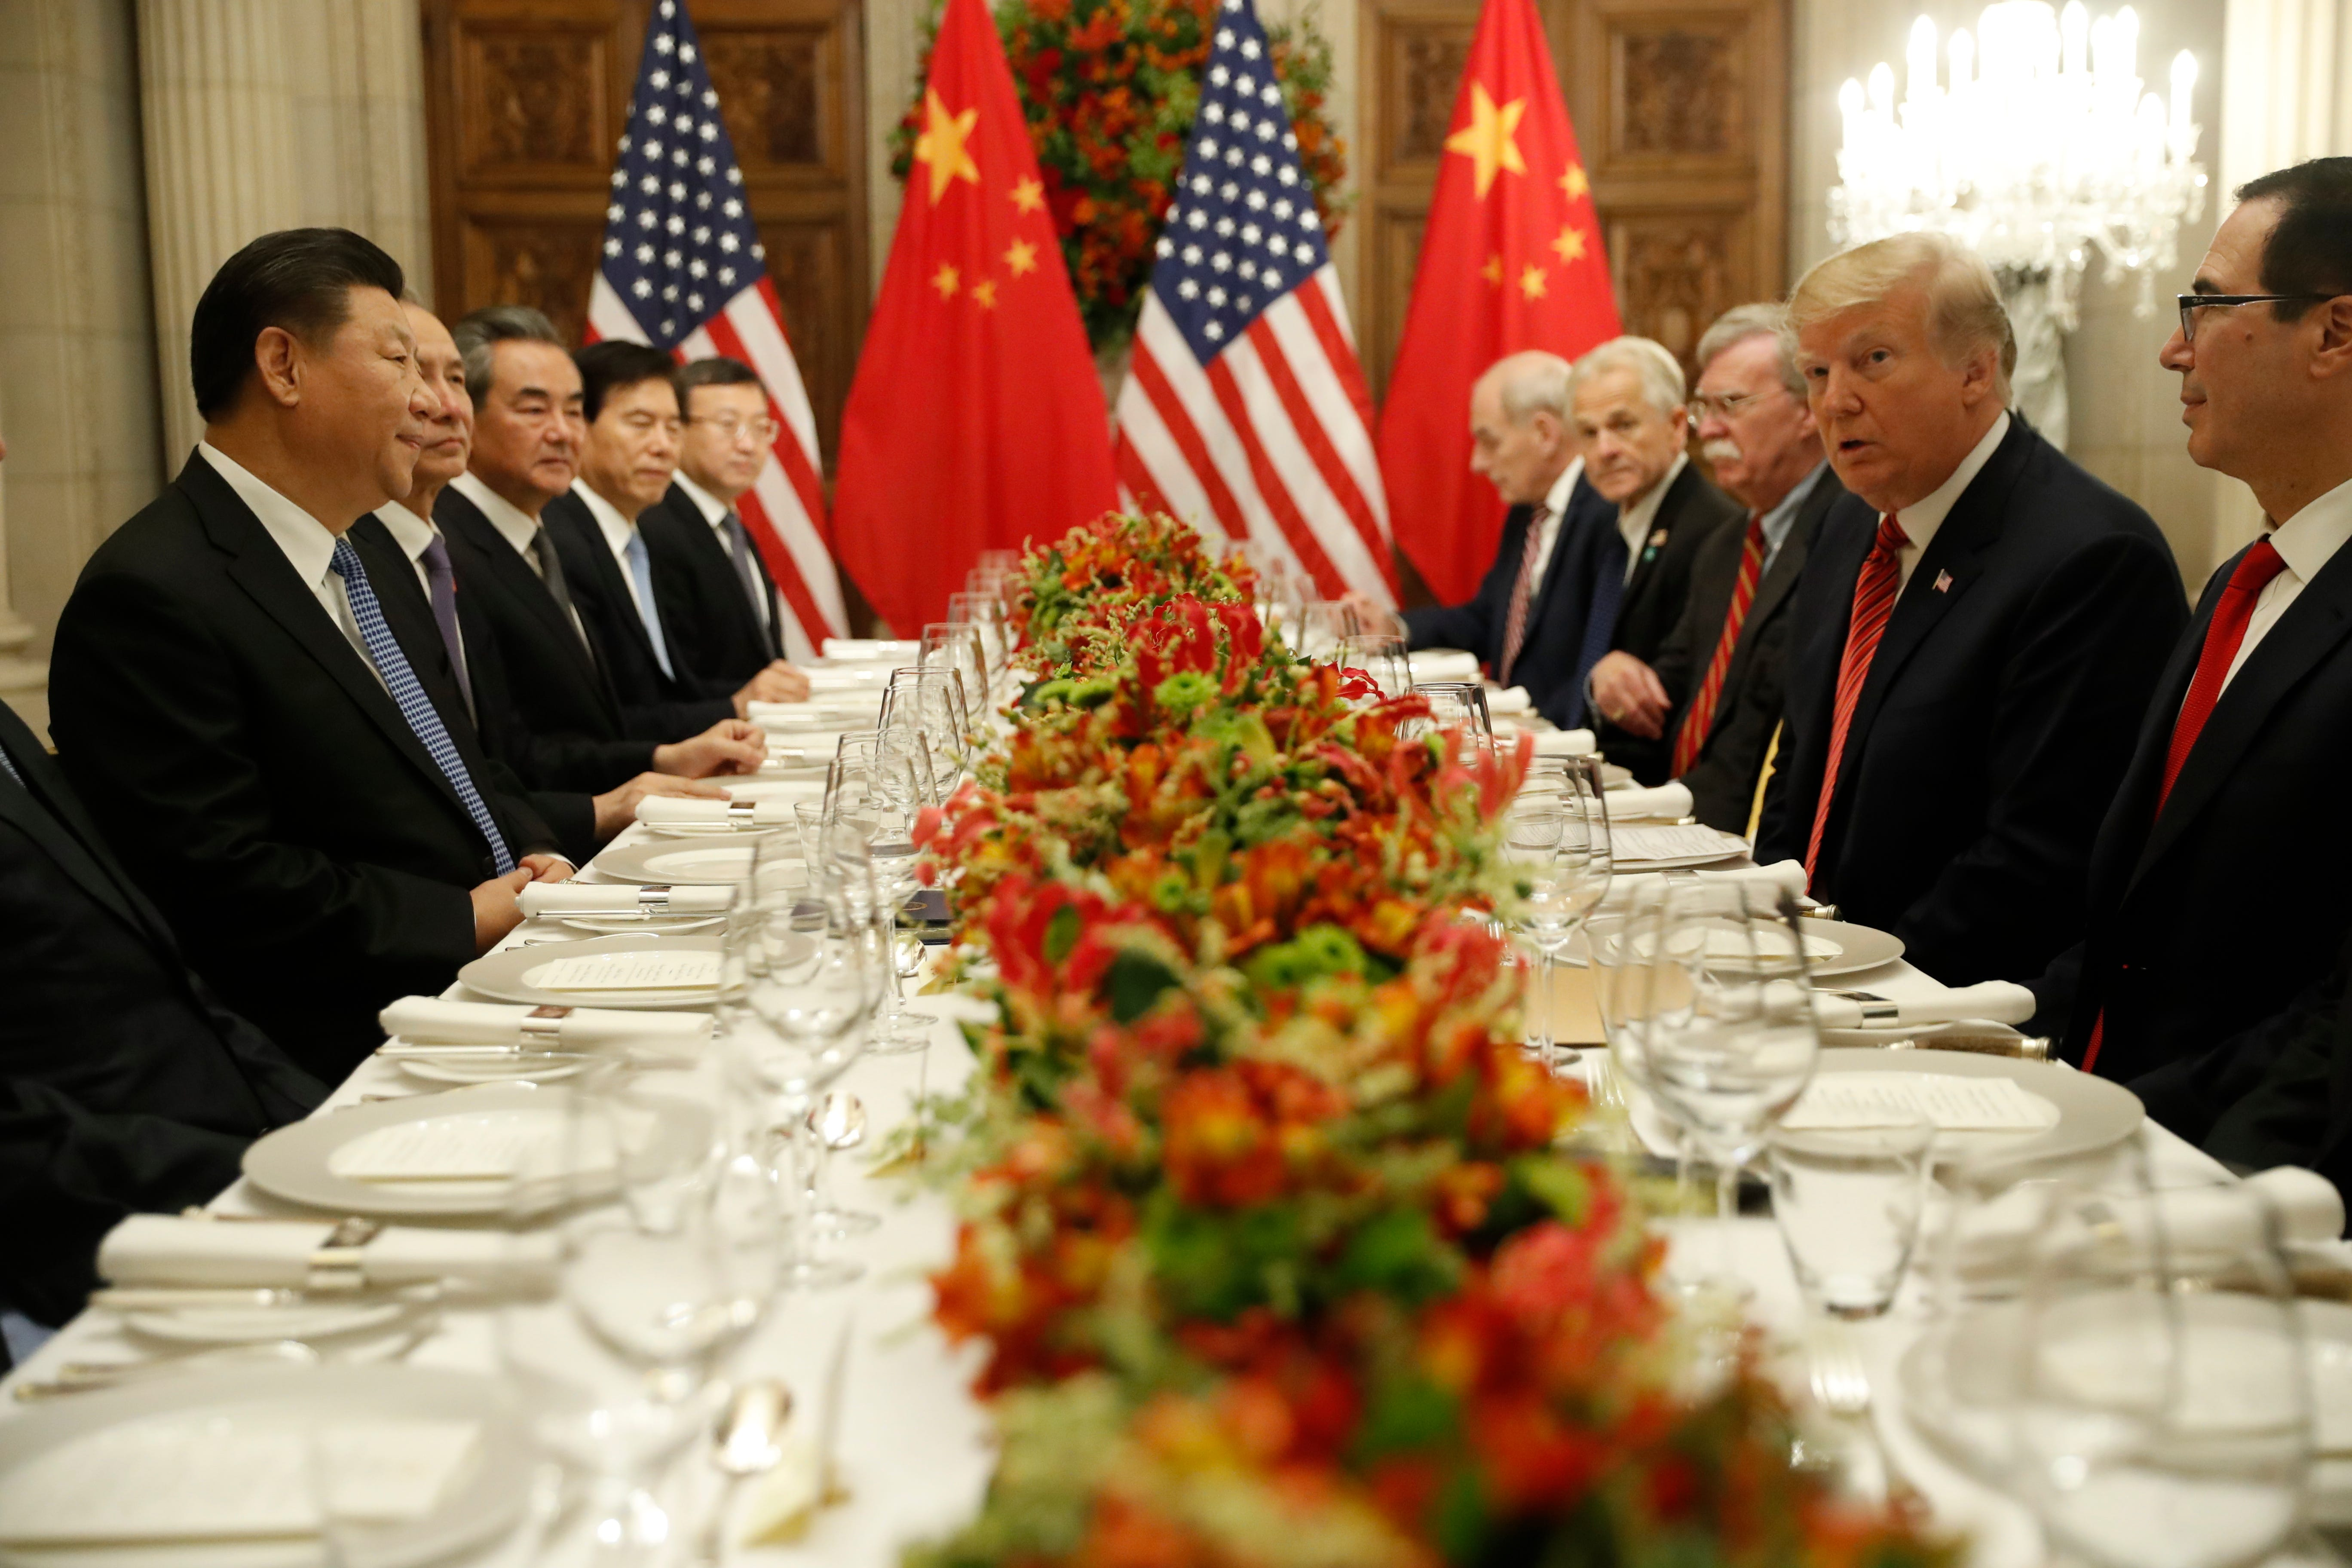 Trump makes peace with China over trade at G-20, but can it last?